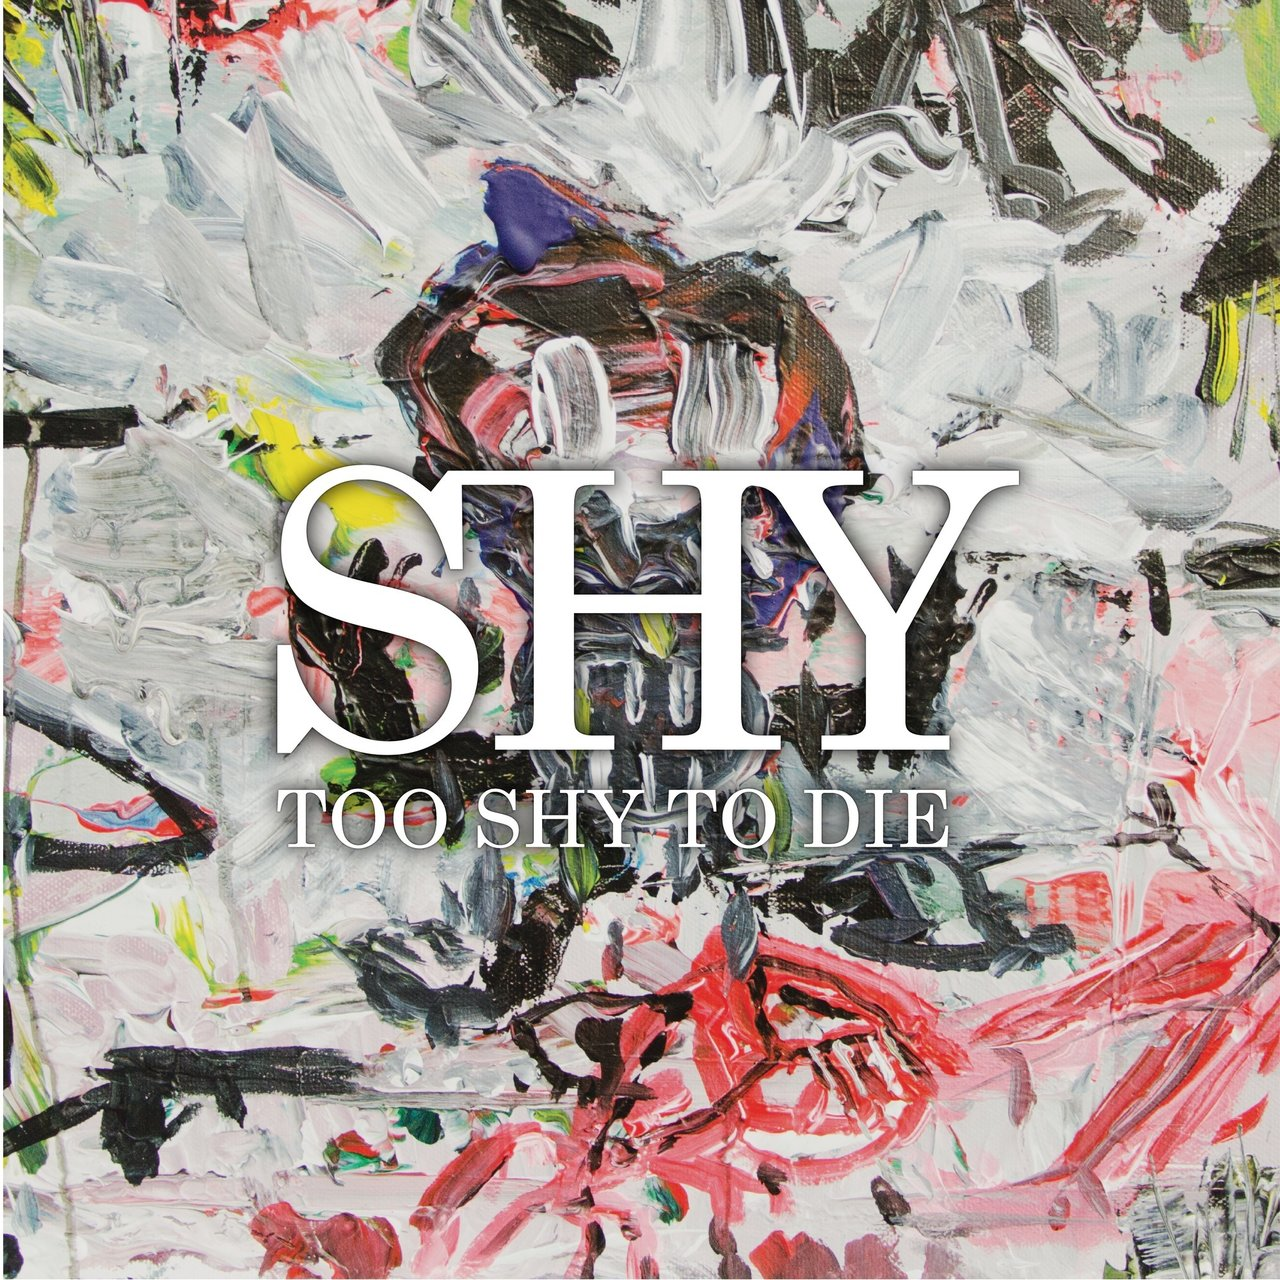 Too Shy to Die